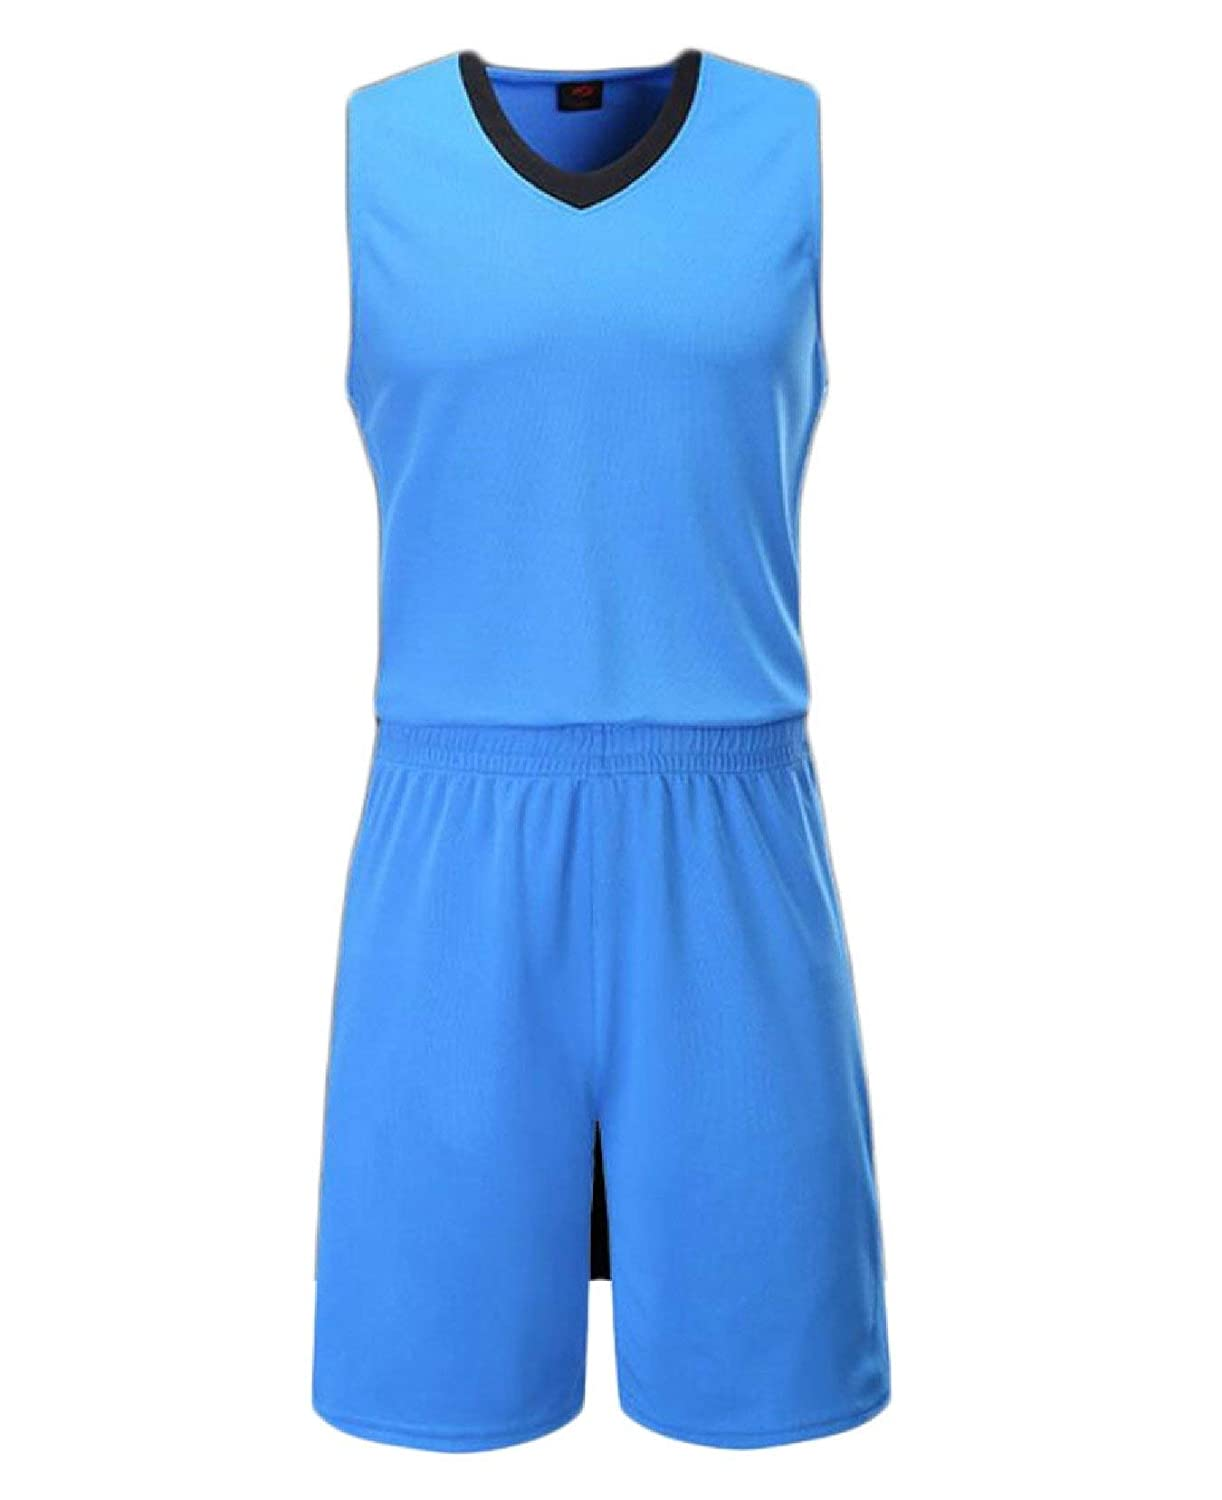 Alion Mens Basketball Jersey and Shorts Trainning Uniform Tank Top Set